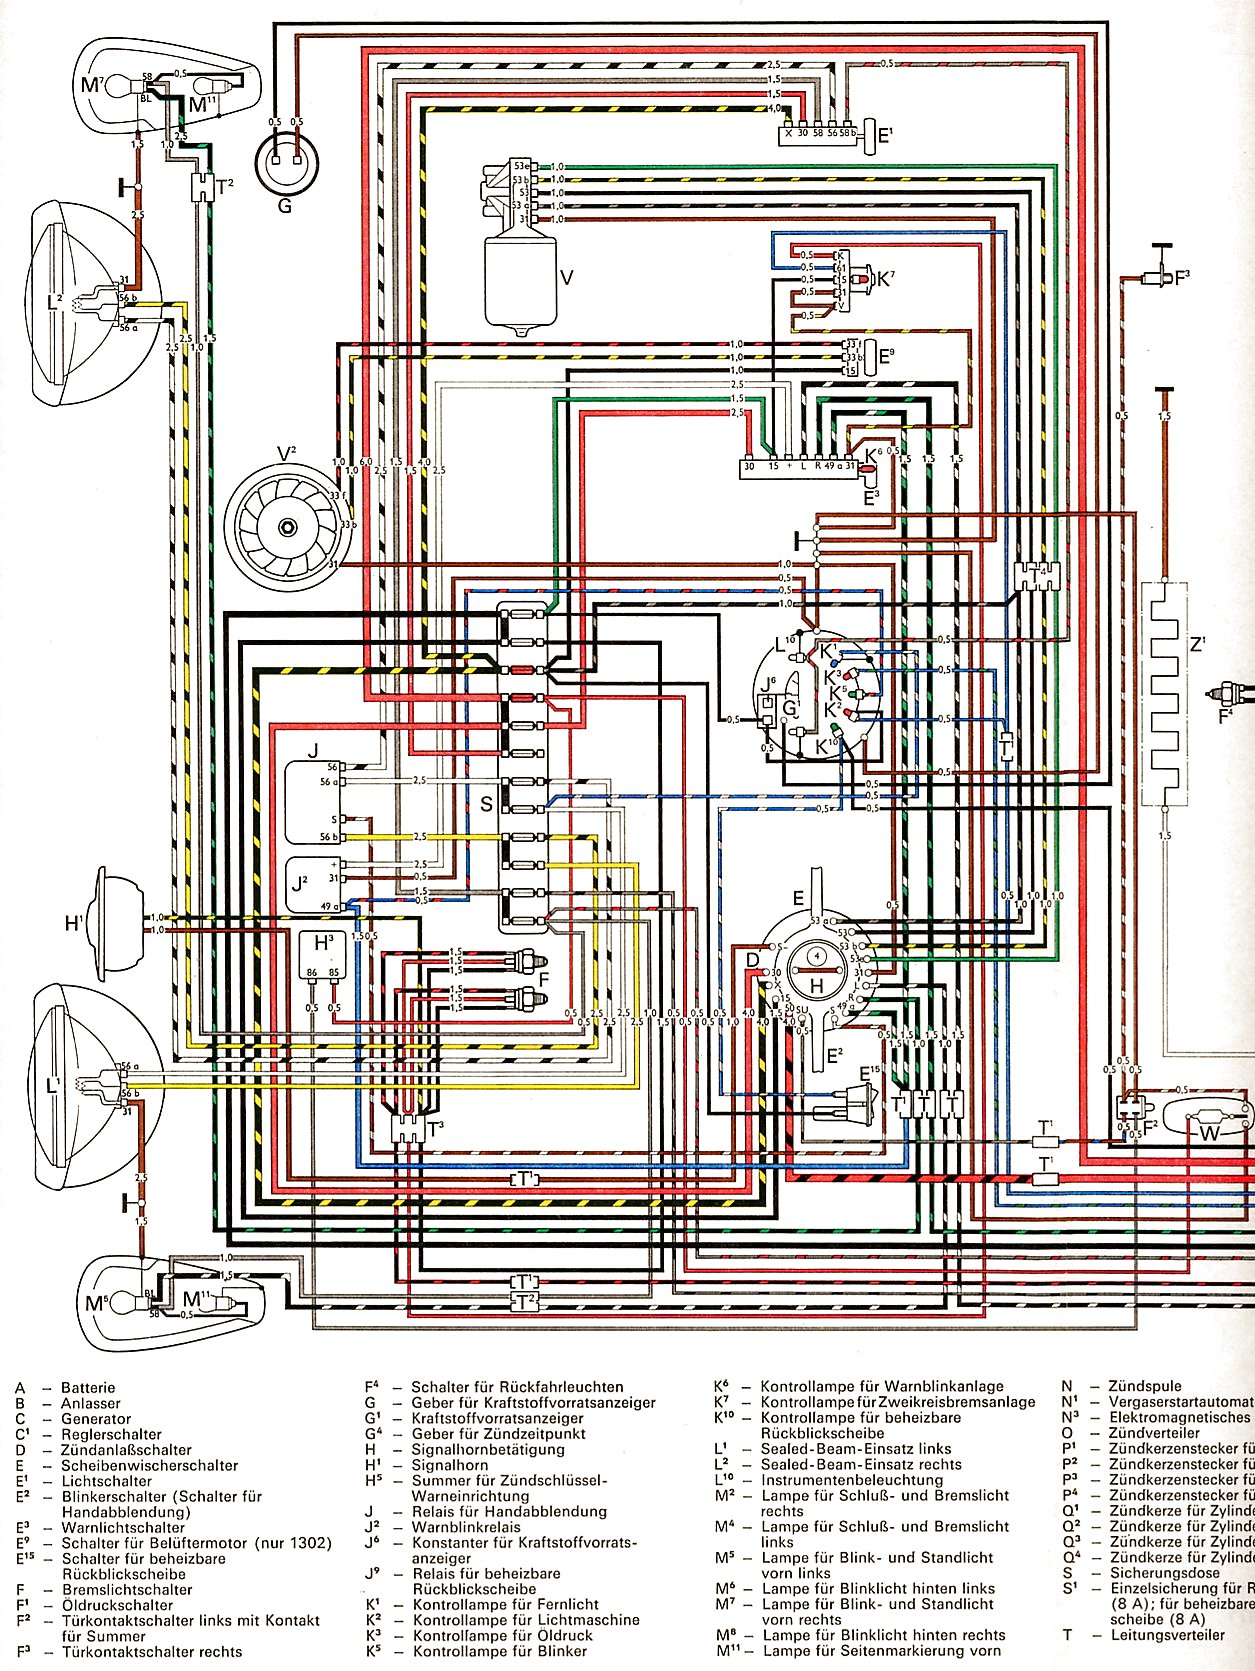 1300_and_1302_USA_from_August_1971 1 wiring help 1974 vw beetle shoptalkforums com 74 karmann ghia wiring diagram at soozxer.org